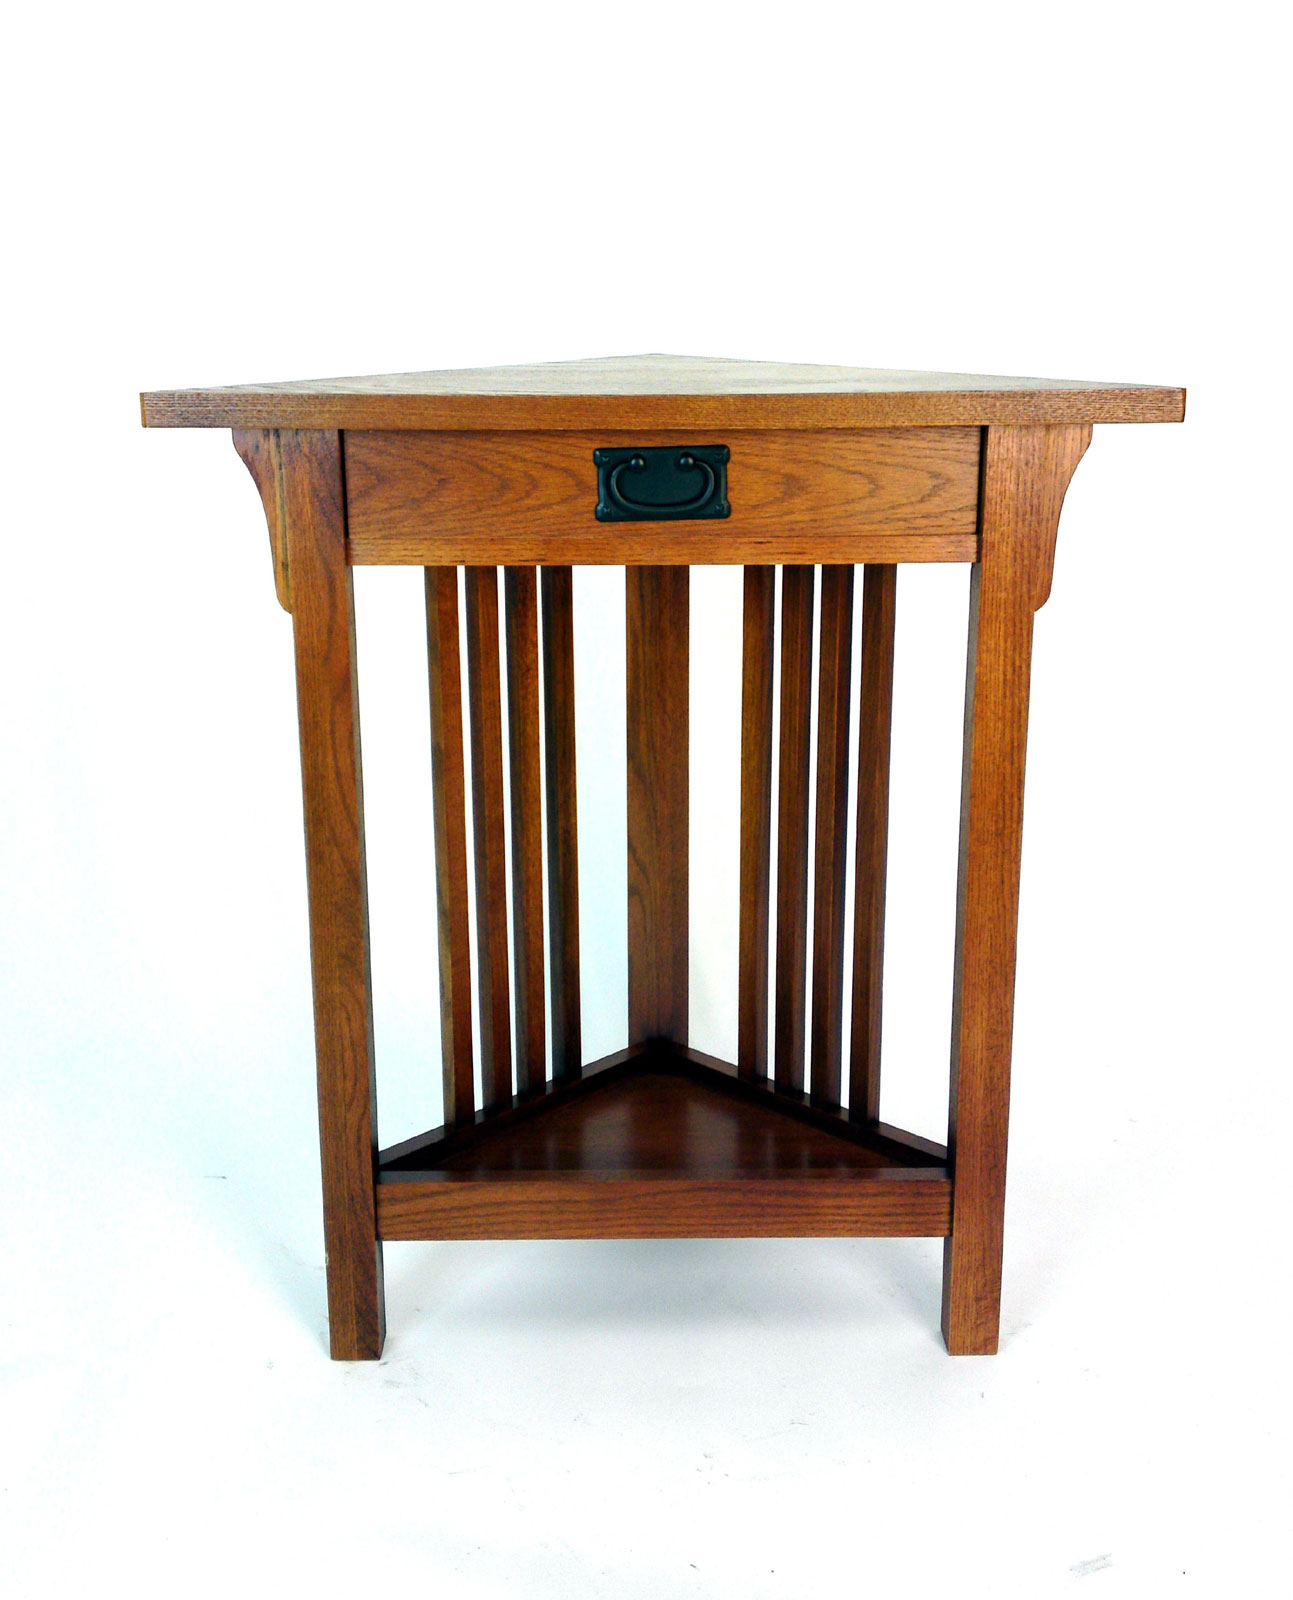 Mission Style Corner Table By Wayborn Price: $202.99